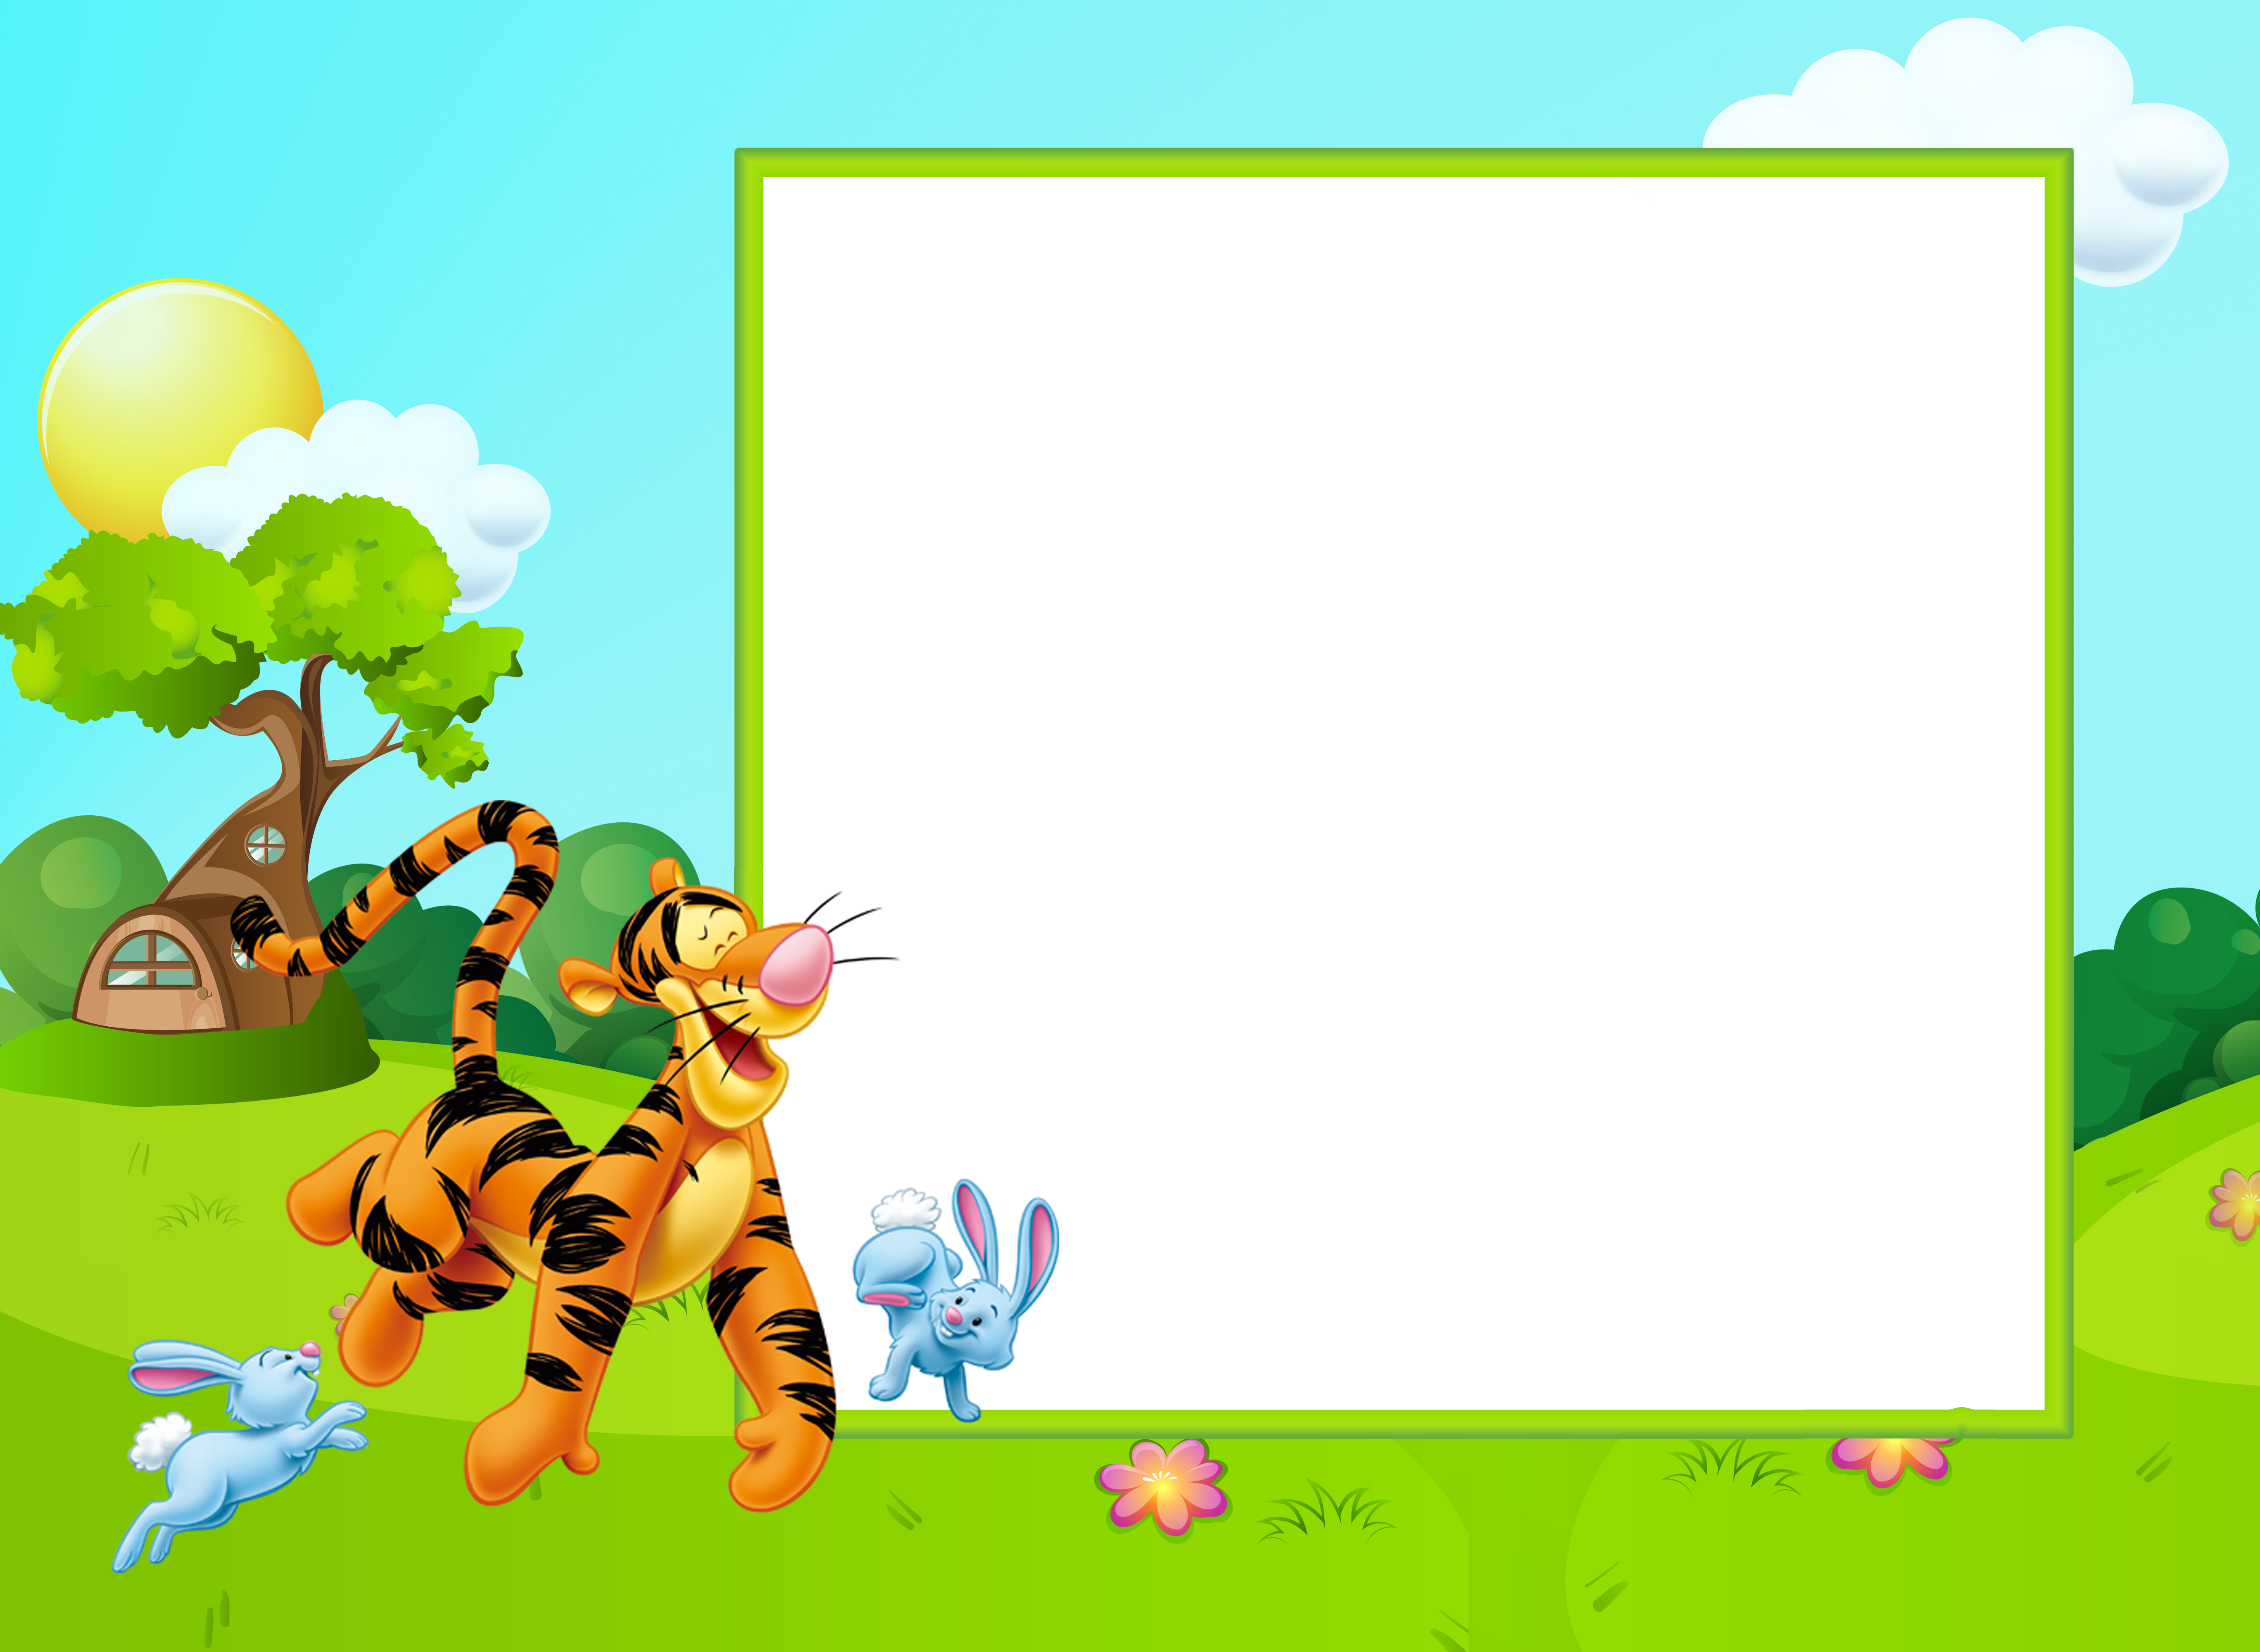 Kids sitting watching a cross clipart graphic royalty free download Cute Kids Transparent PNG Frame with Tigger | Gallery Yopriceville ... graphic royalty free download